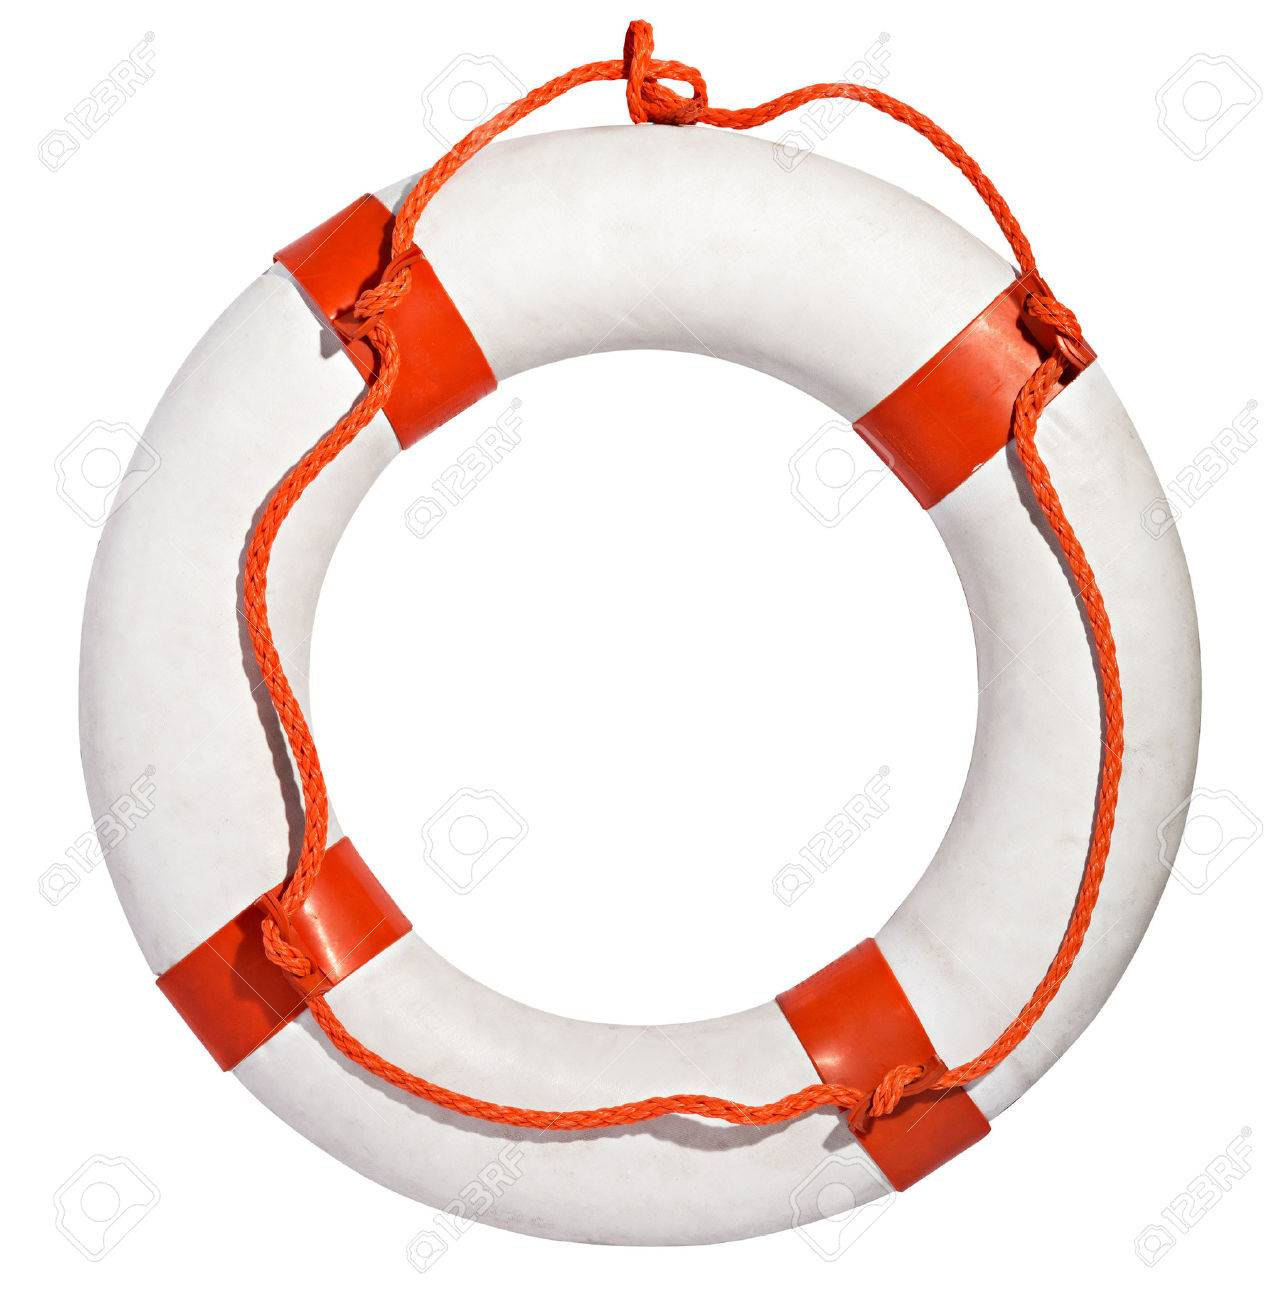 Clean white life ring, lifesaver or life preserver with red rope